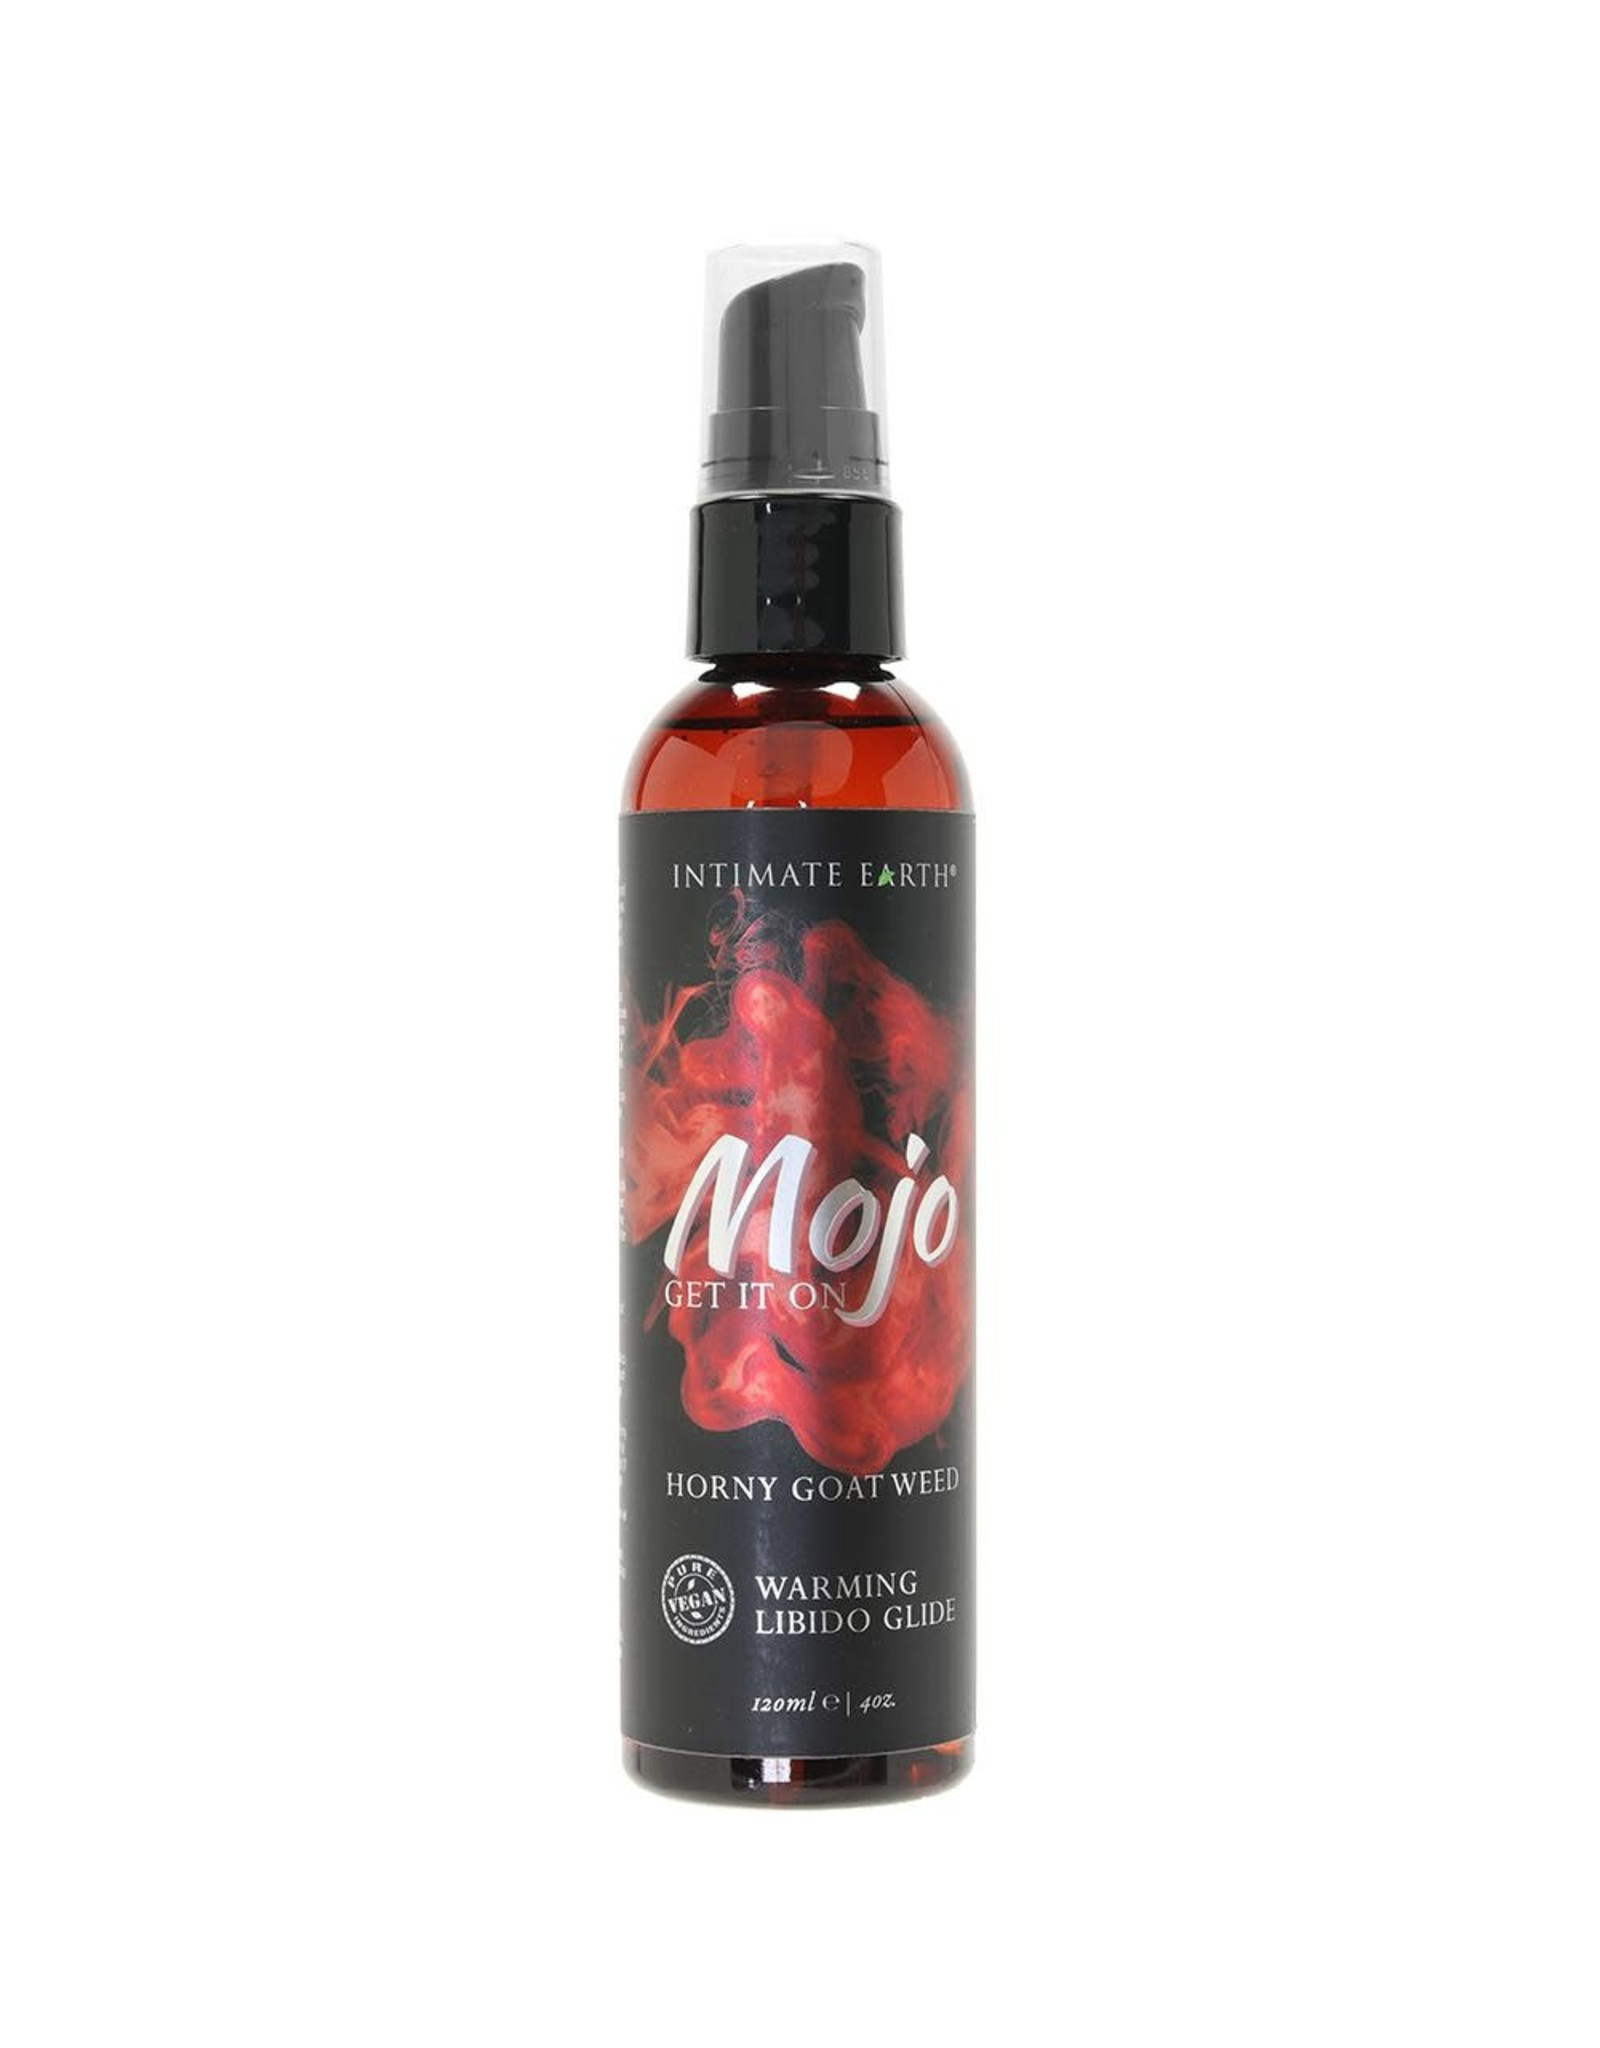 EARTHLY BODY INTIMATE EARTH - HORNY GOAT WEED WARMING LIBIDO GLIDE 4OZ.